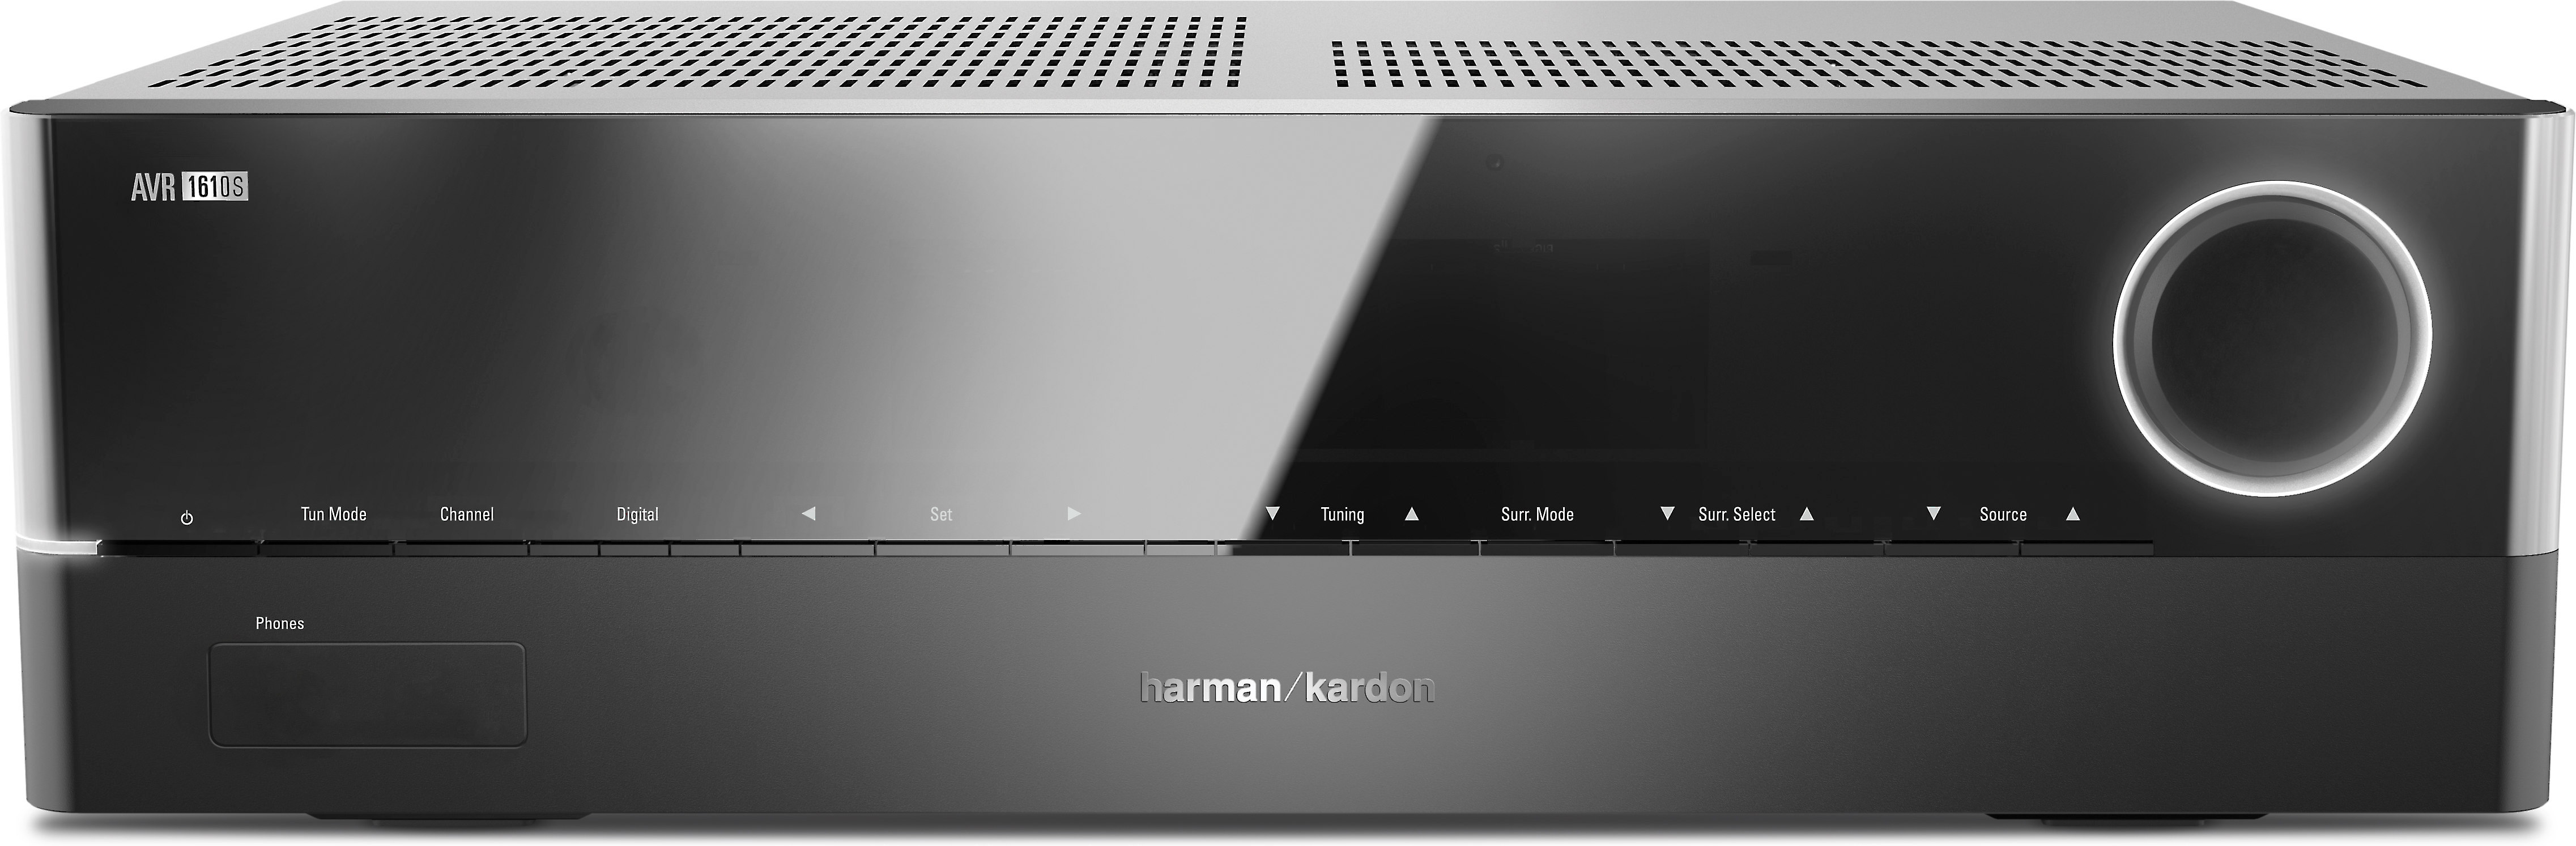 Harman Kardon AVR 1610S